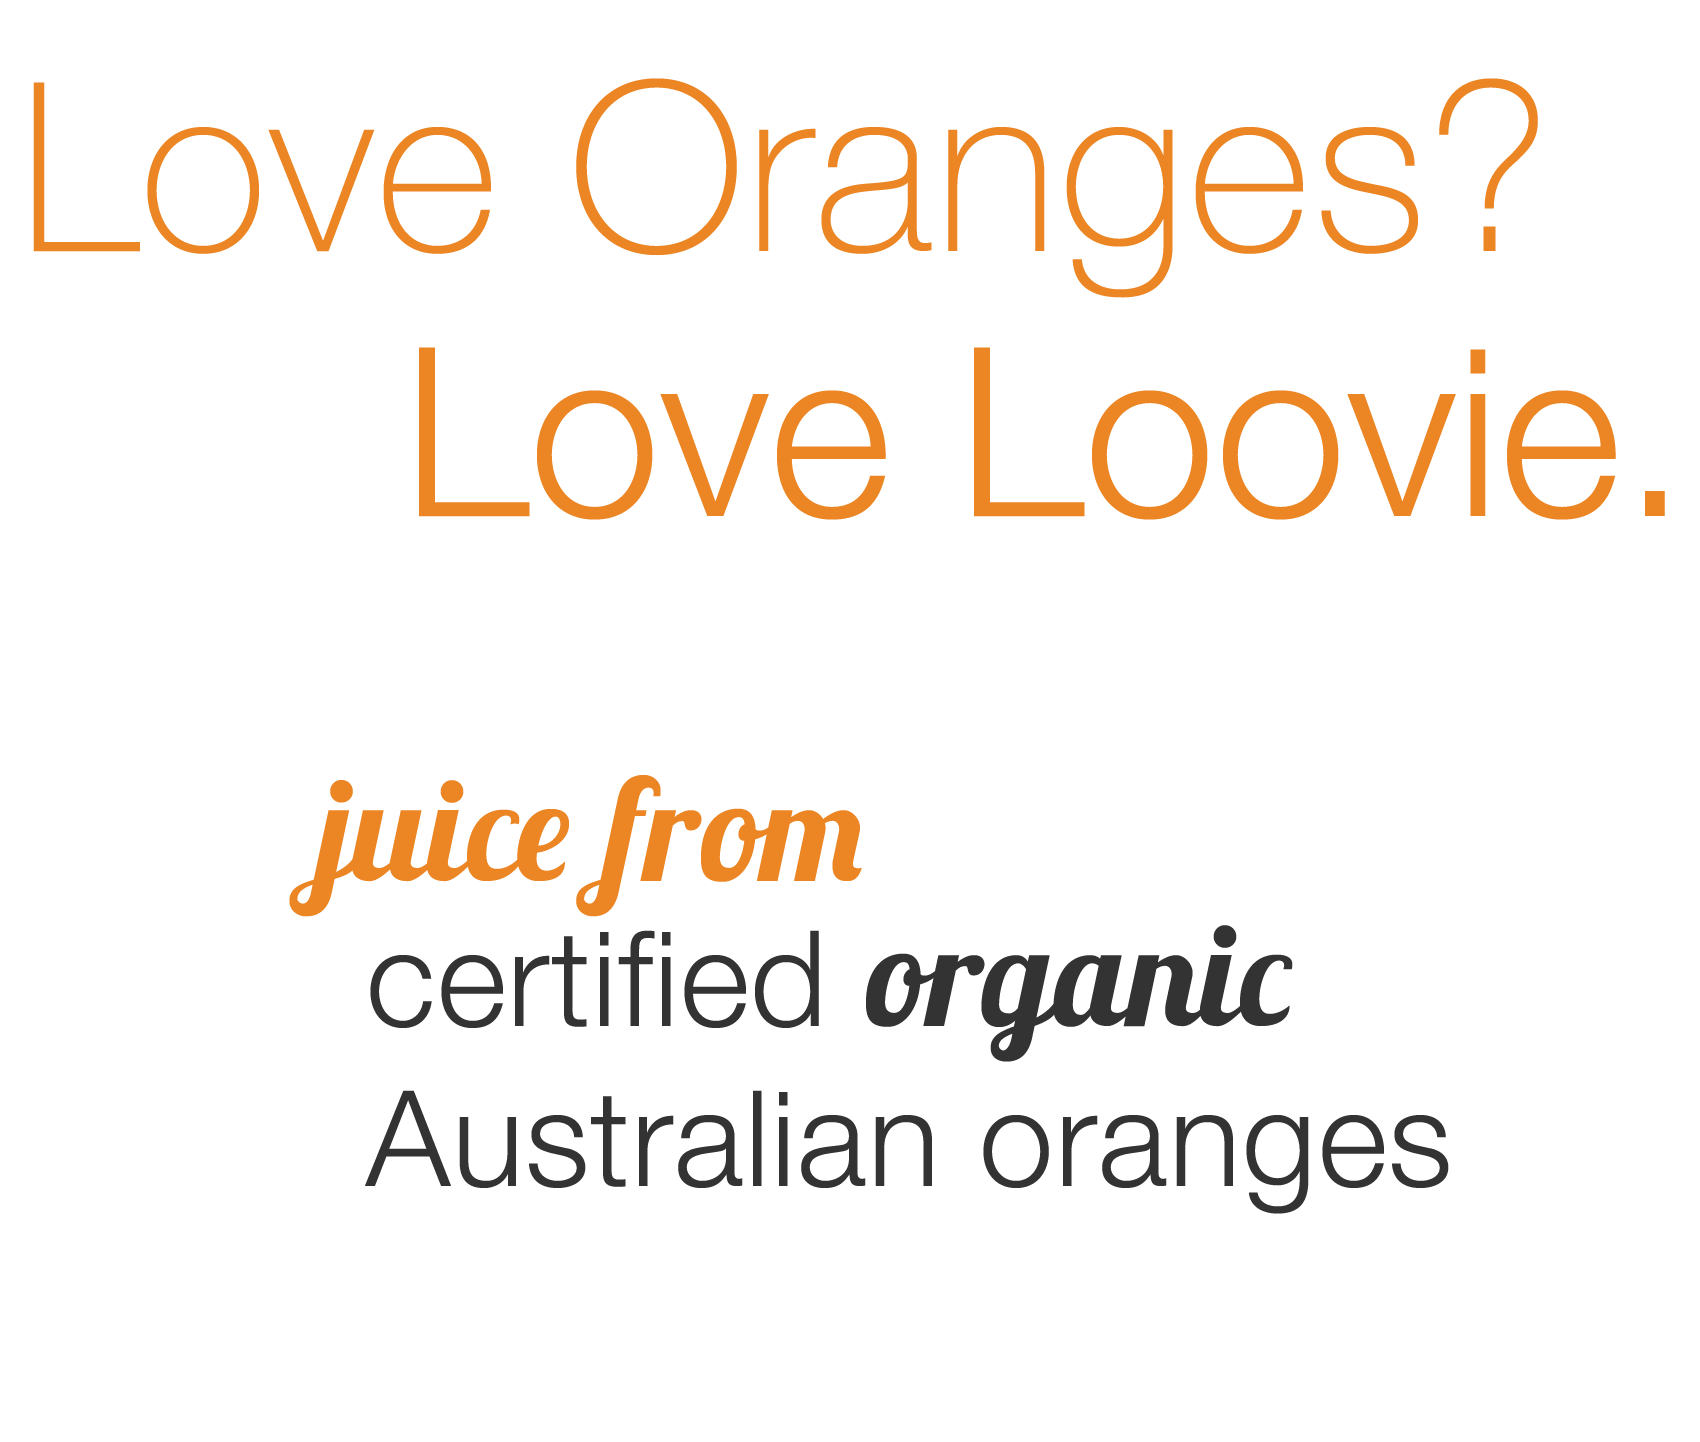 Love Oranges? Love Loovie.